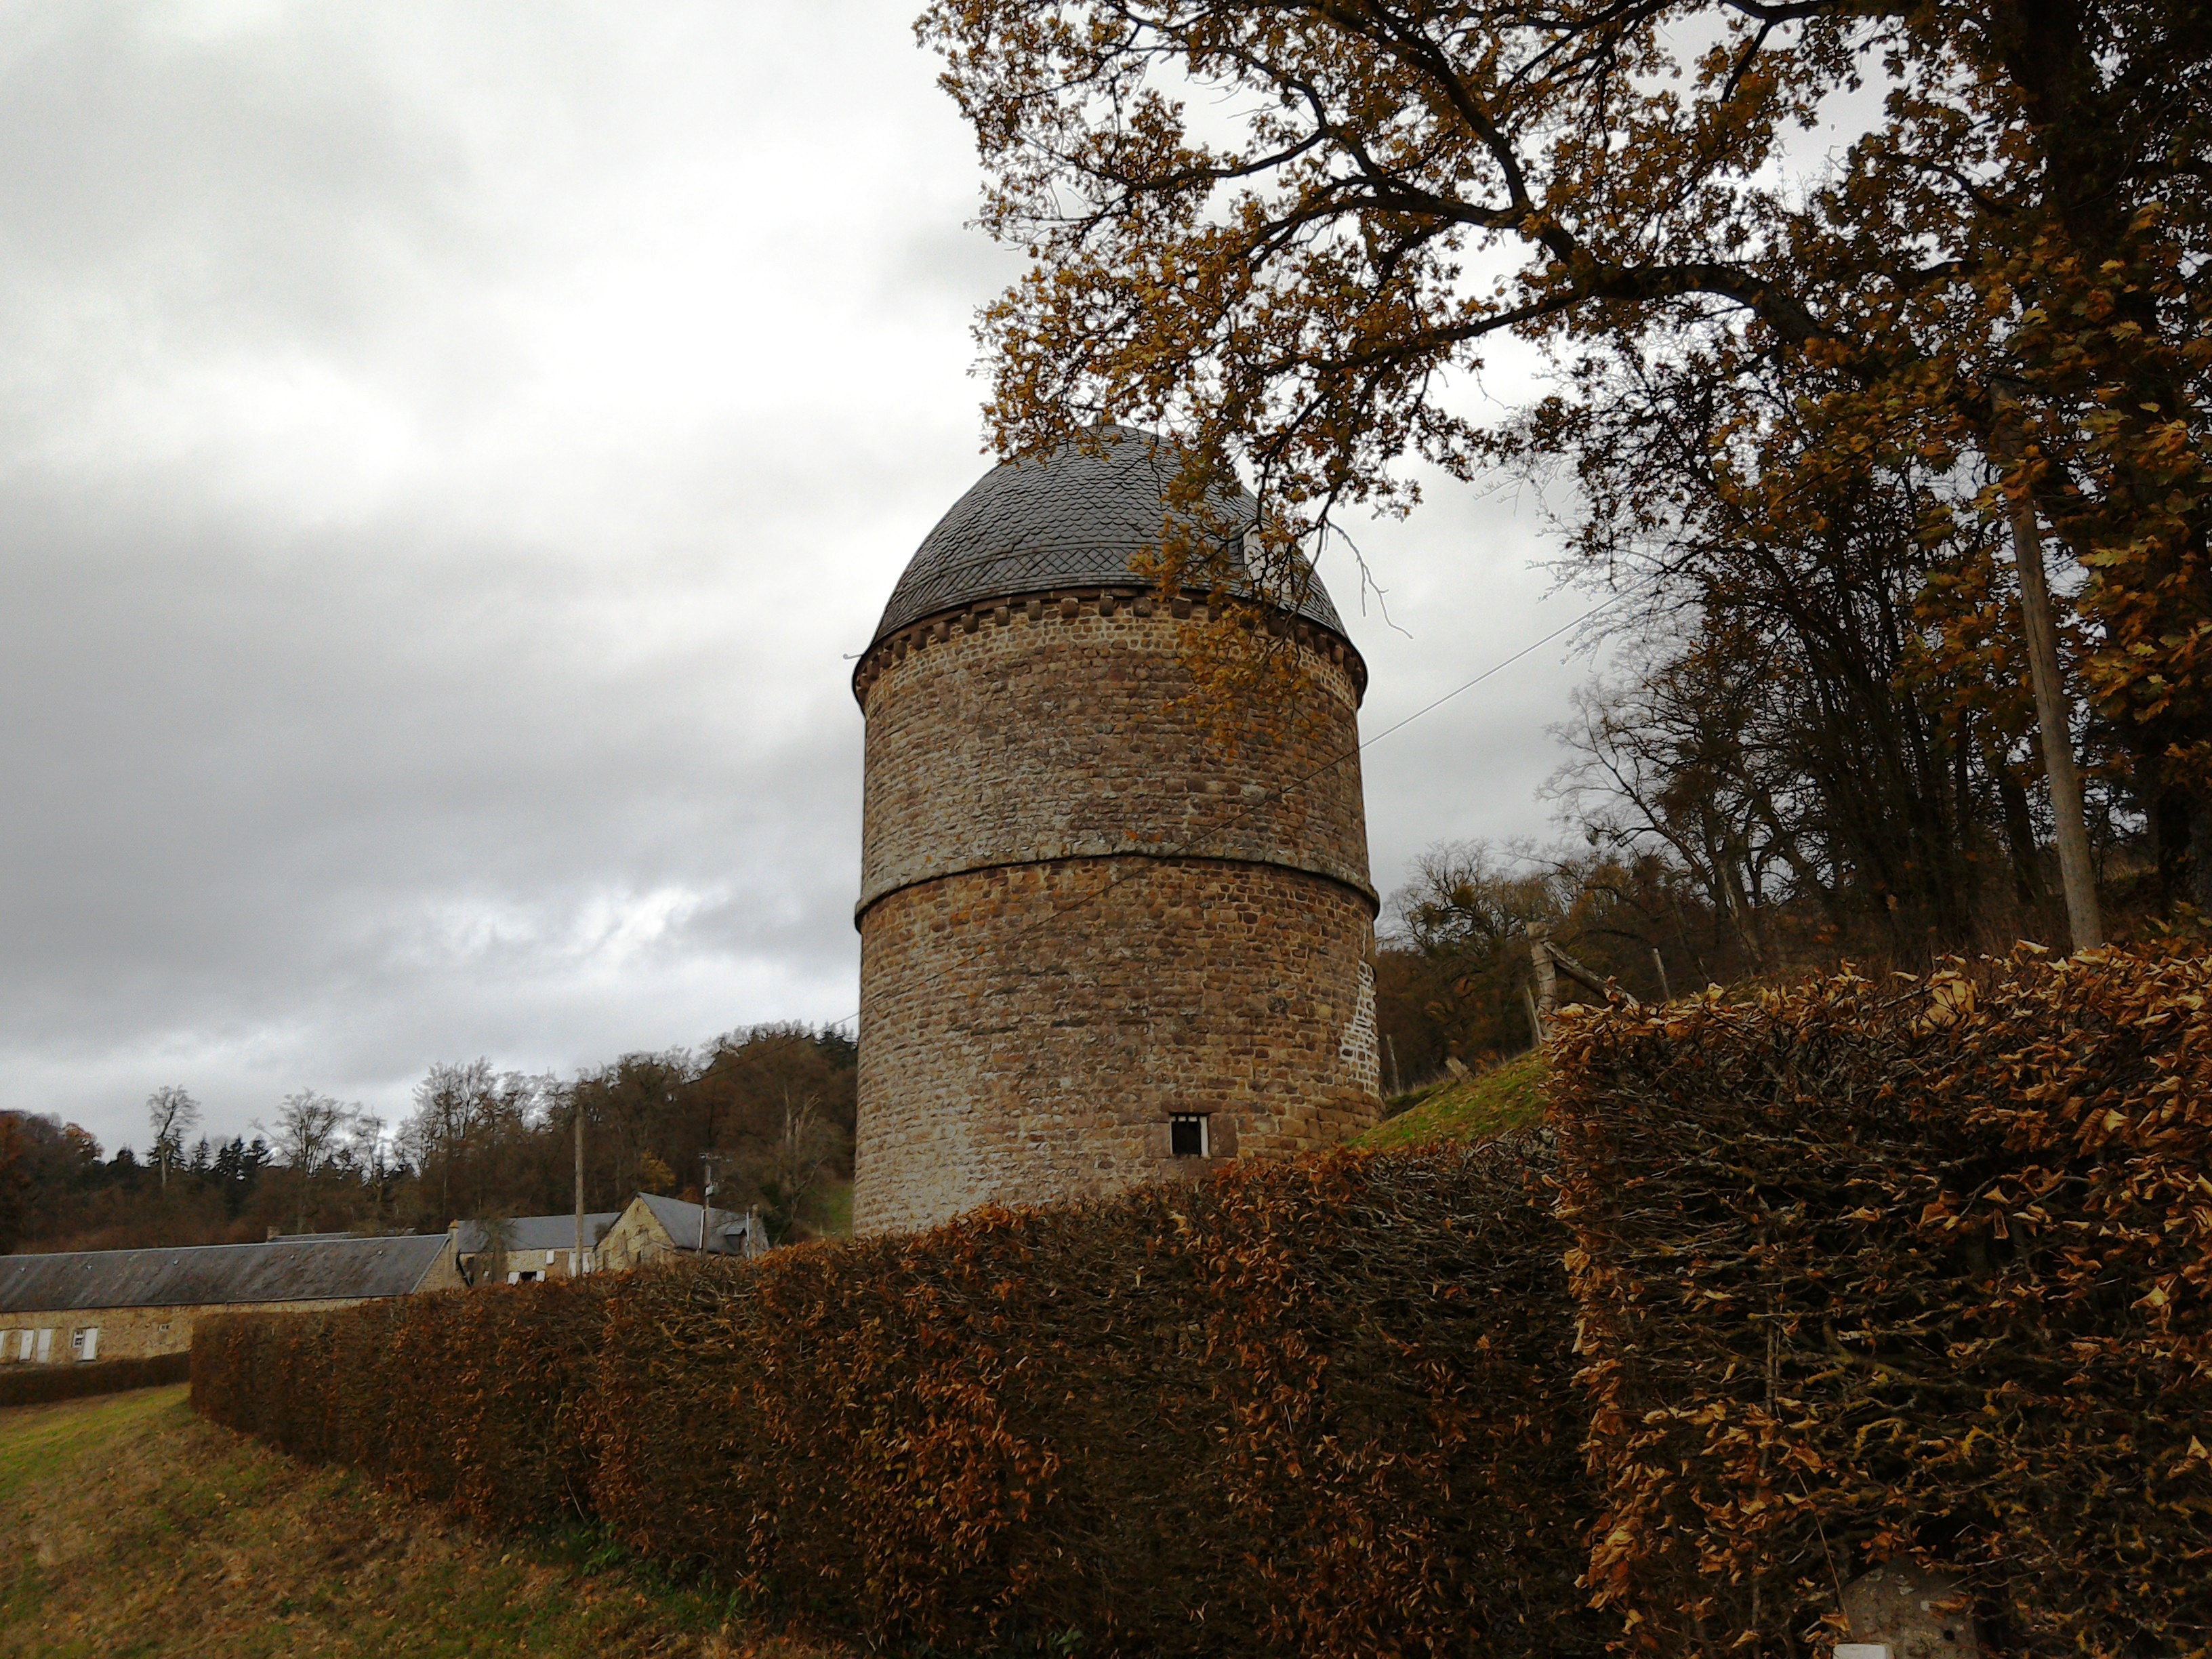 Dovecote at Pontécoulant, Normandy